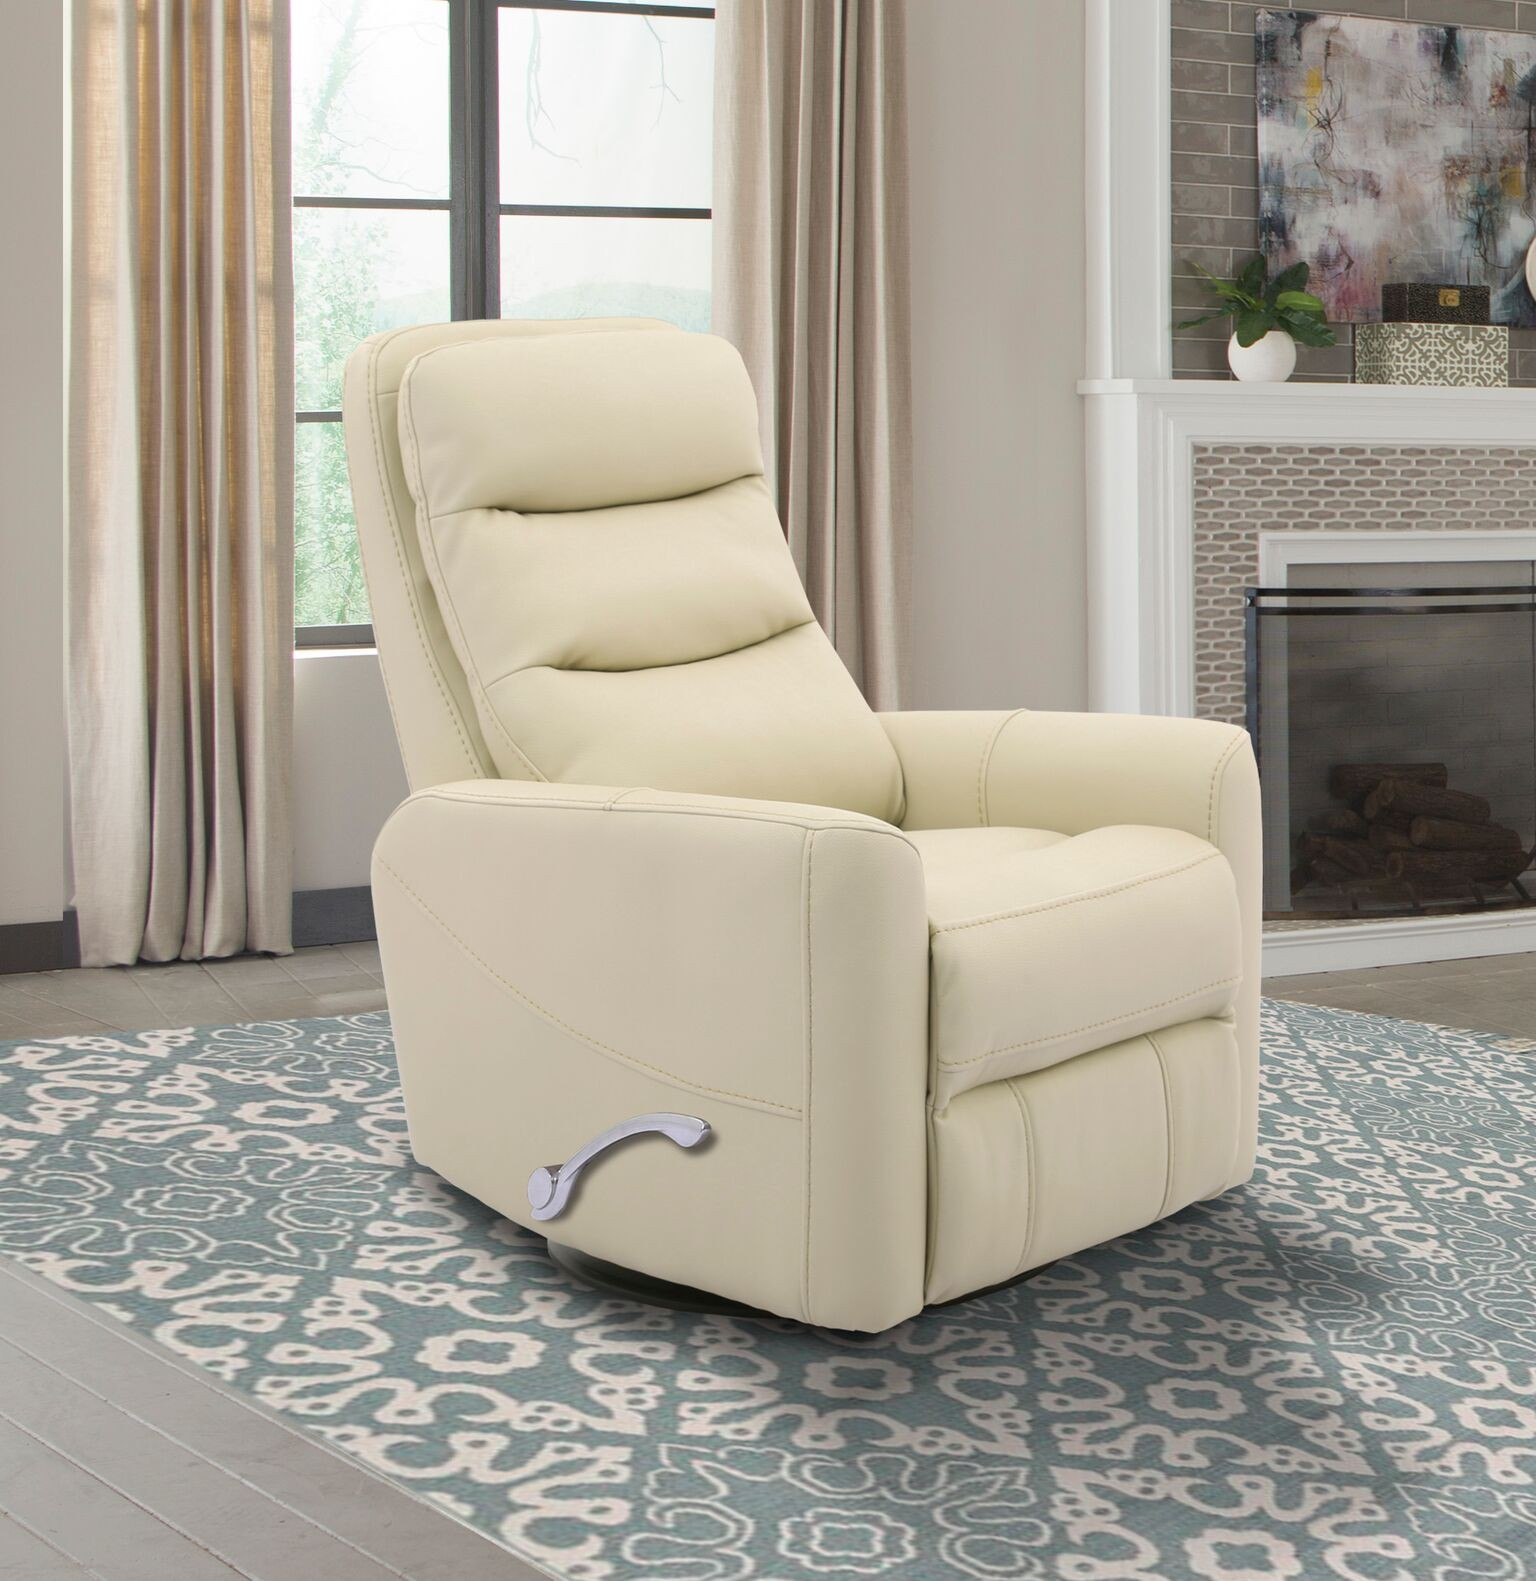 Hercules -Oyster- Swivel Glider Recliner With Articulating Headrest for Hercules Chocolate Swivel Glider Recliners